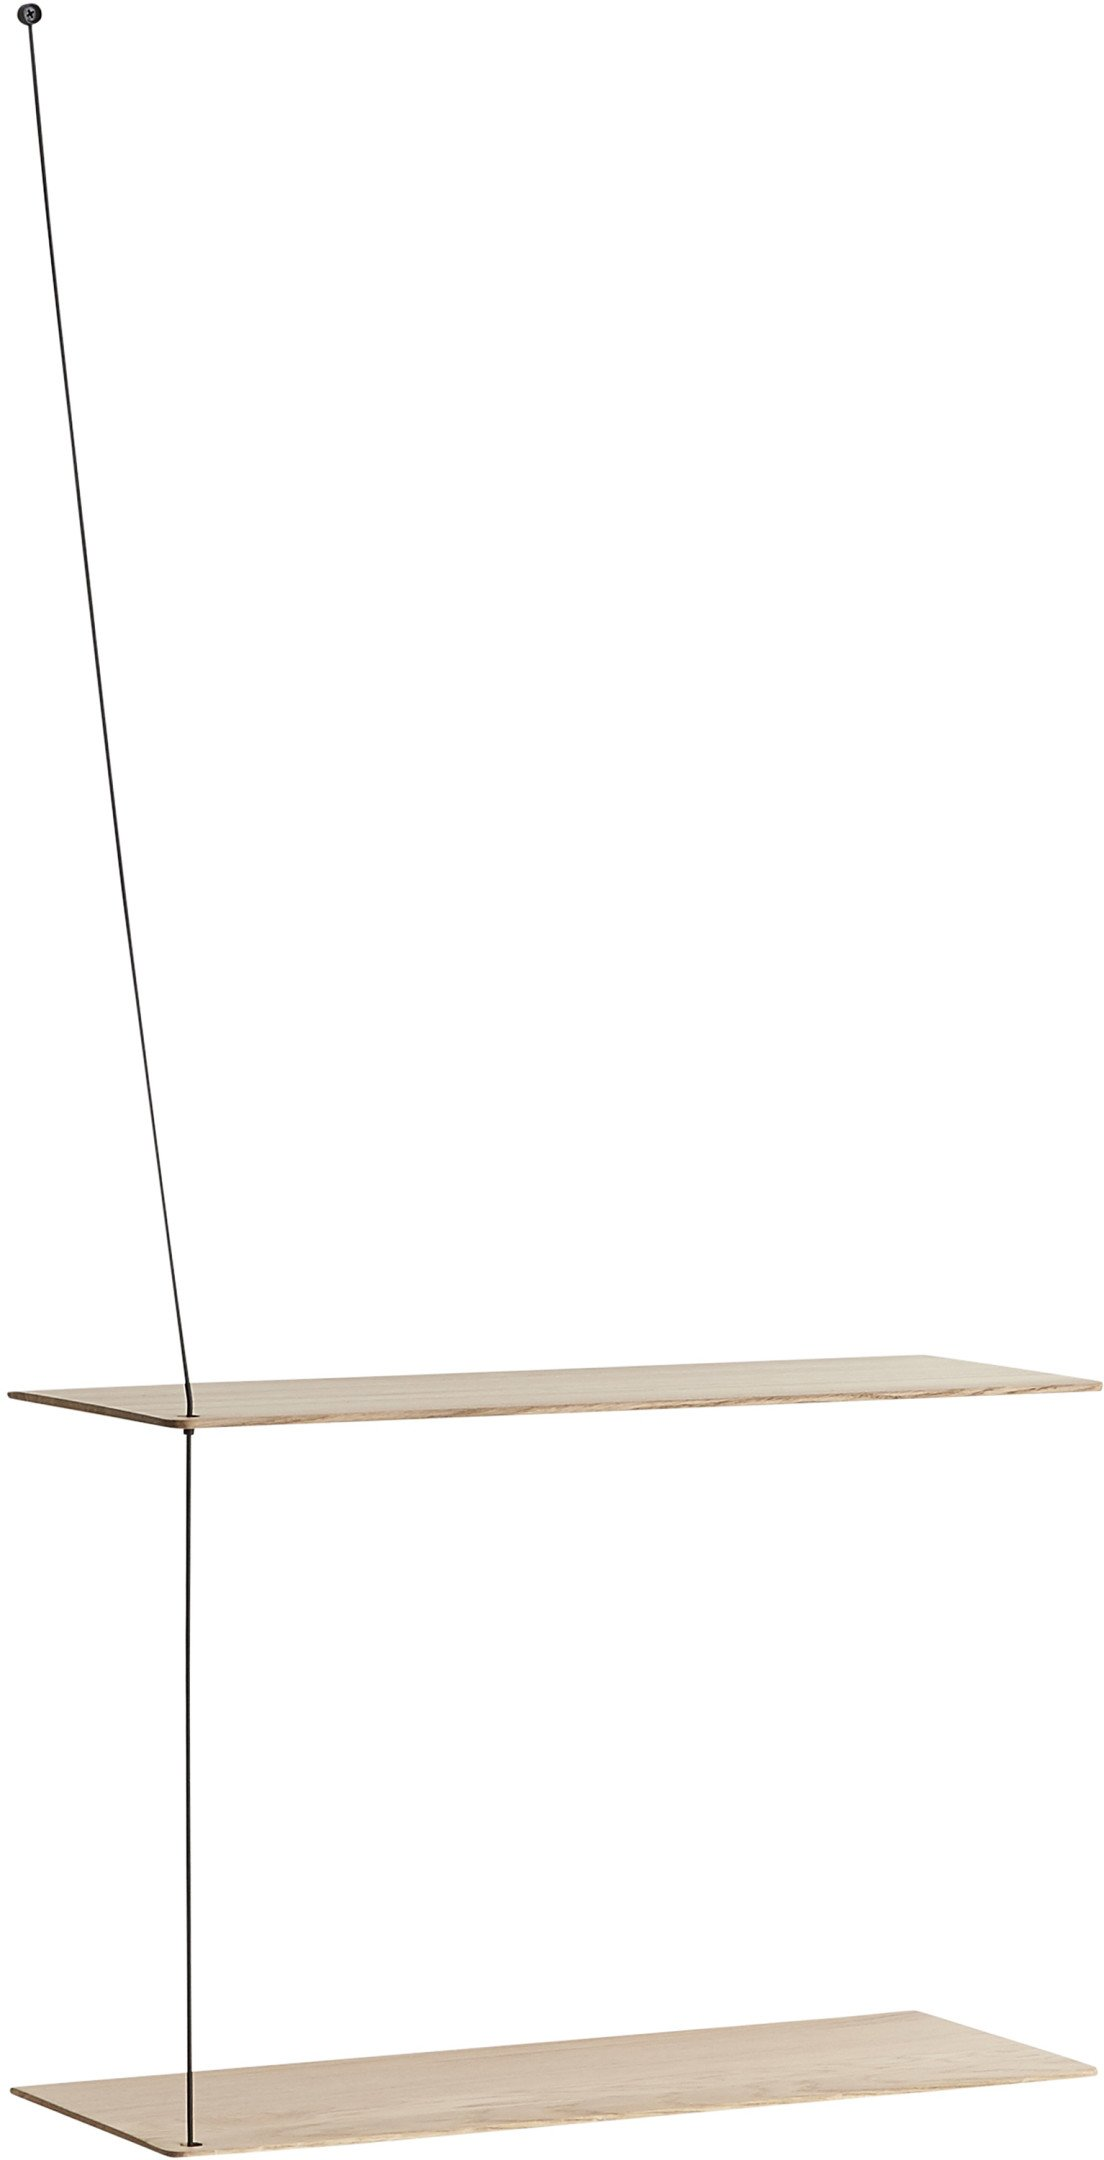 Stedge Shelf 60 cm Light Oak by L. Aldenhoff for WOUD